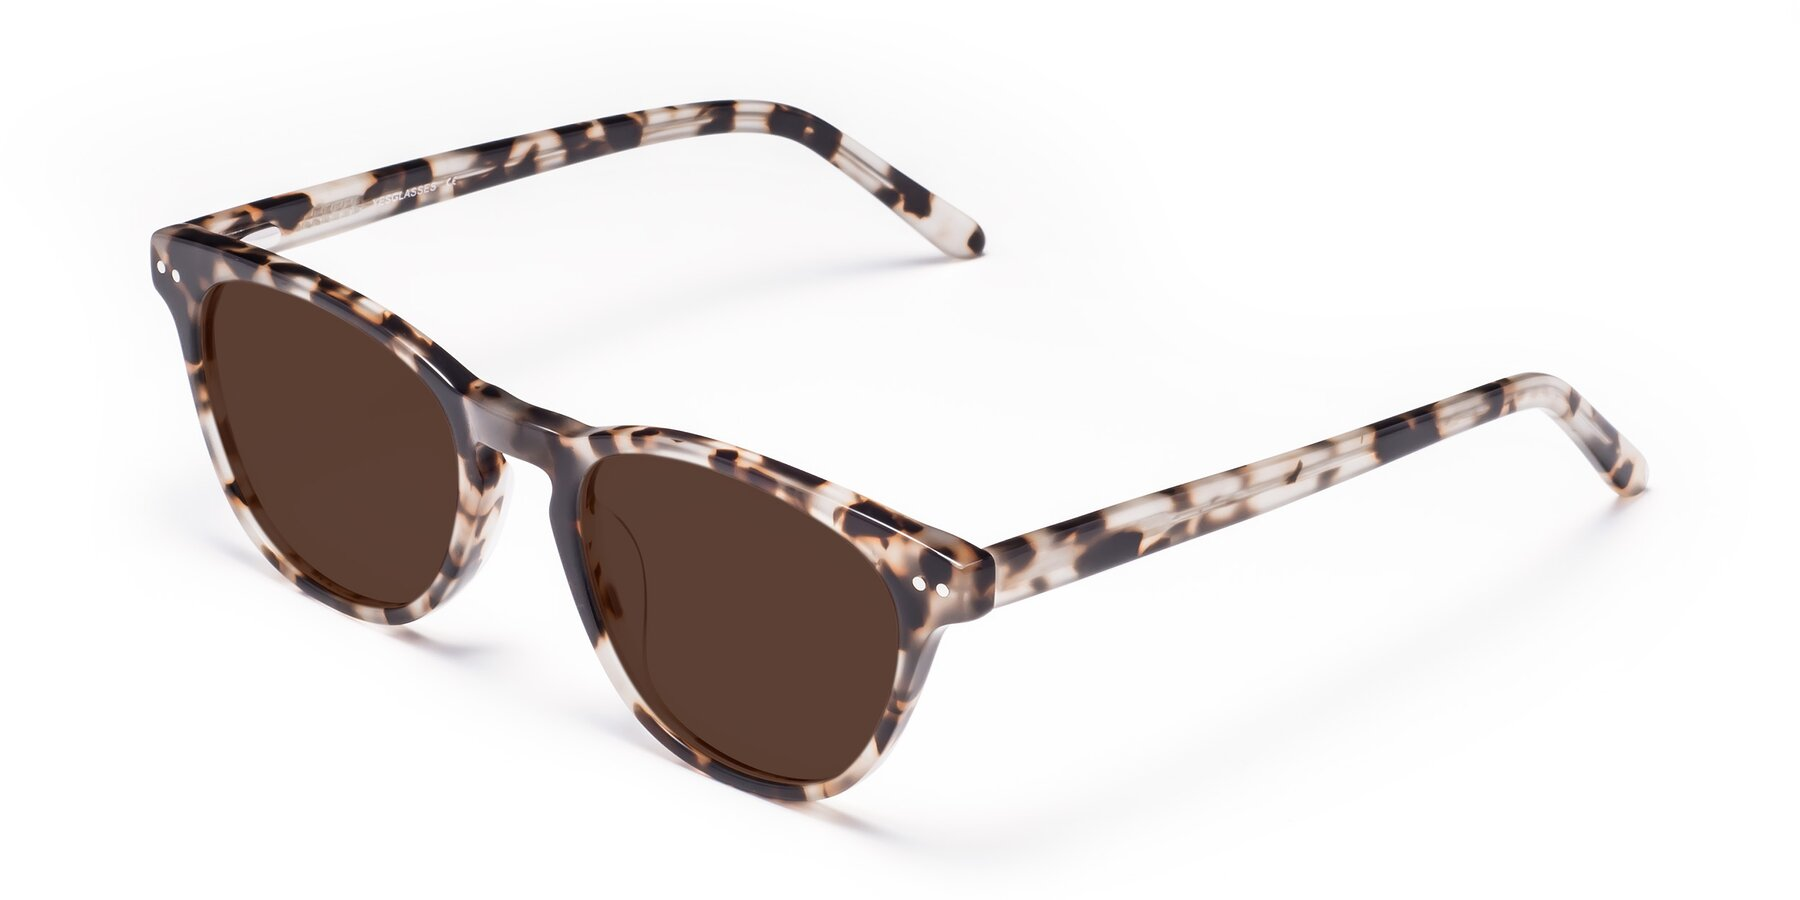 Angle of Blaze in Tortoise with Brown Tinted Lenses